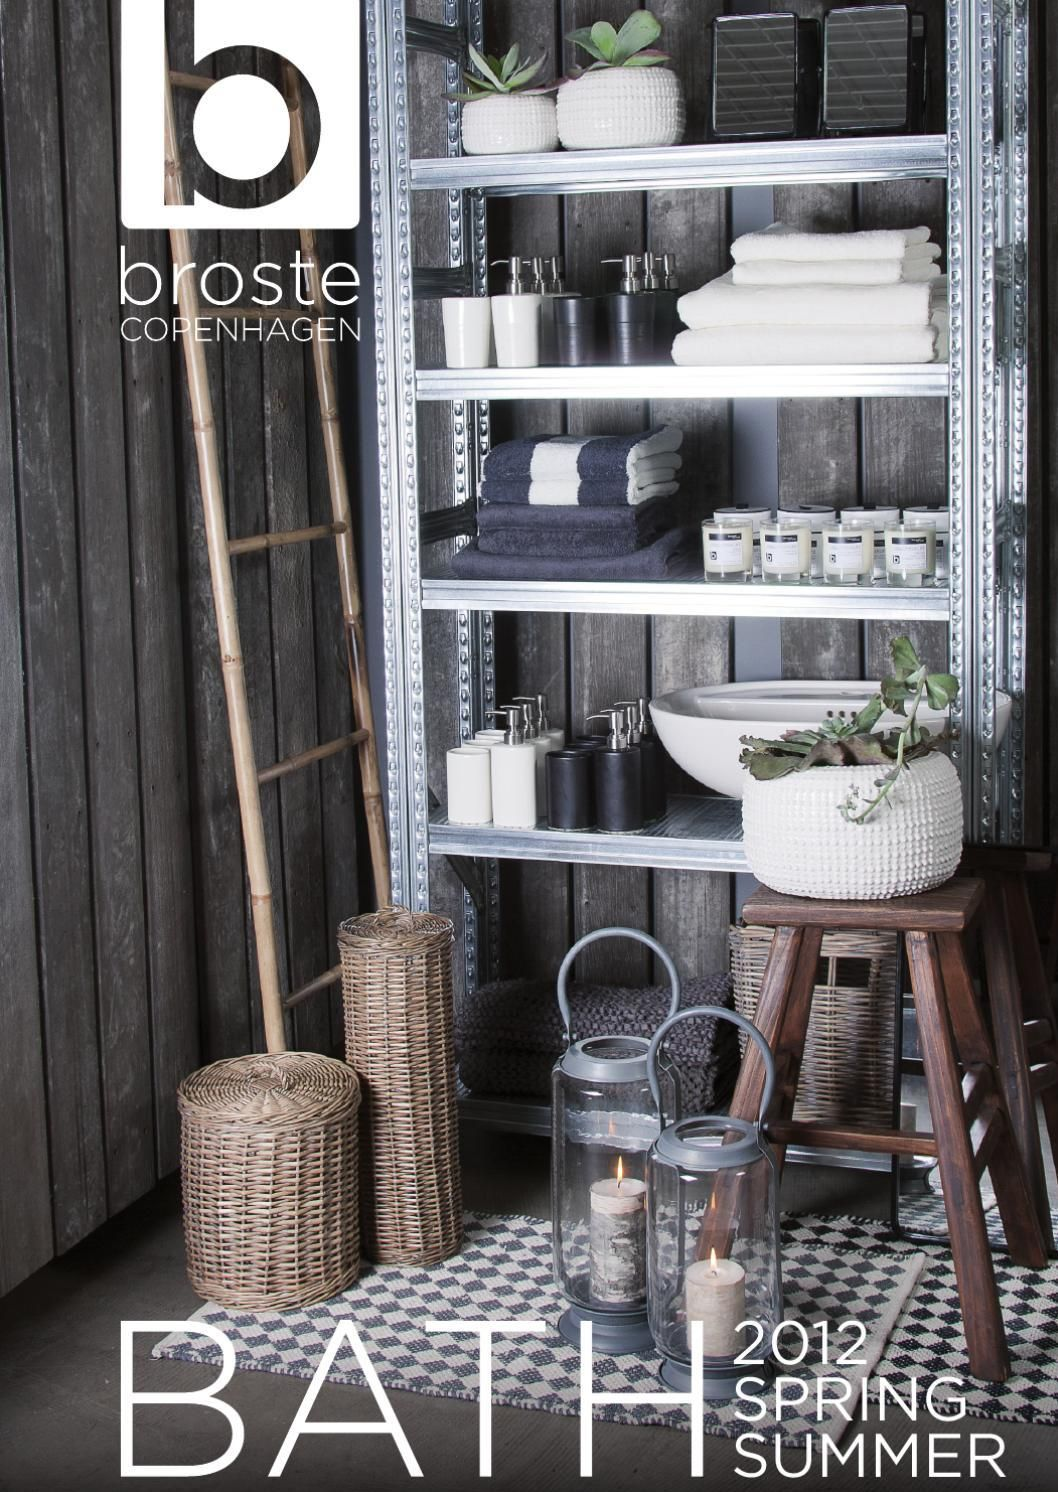 #ClippedOnIssuu from Bath and Wellness collection 2012